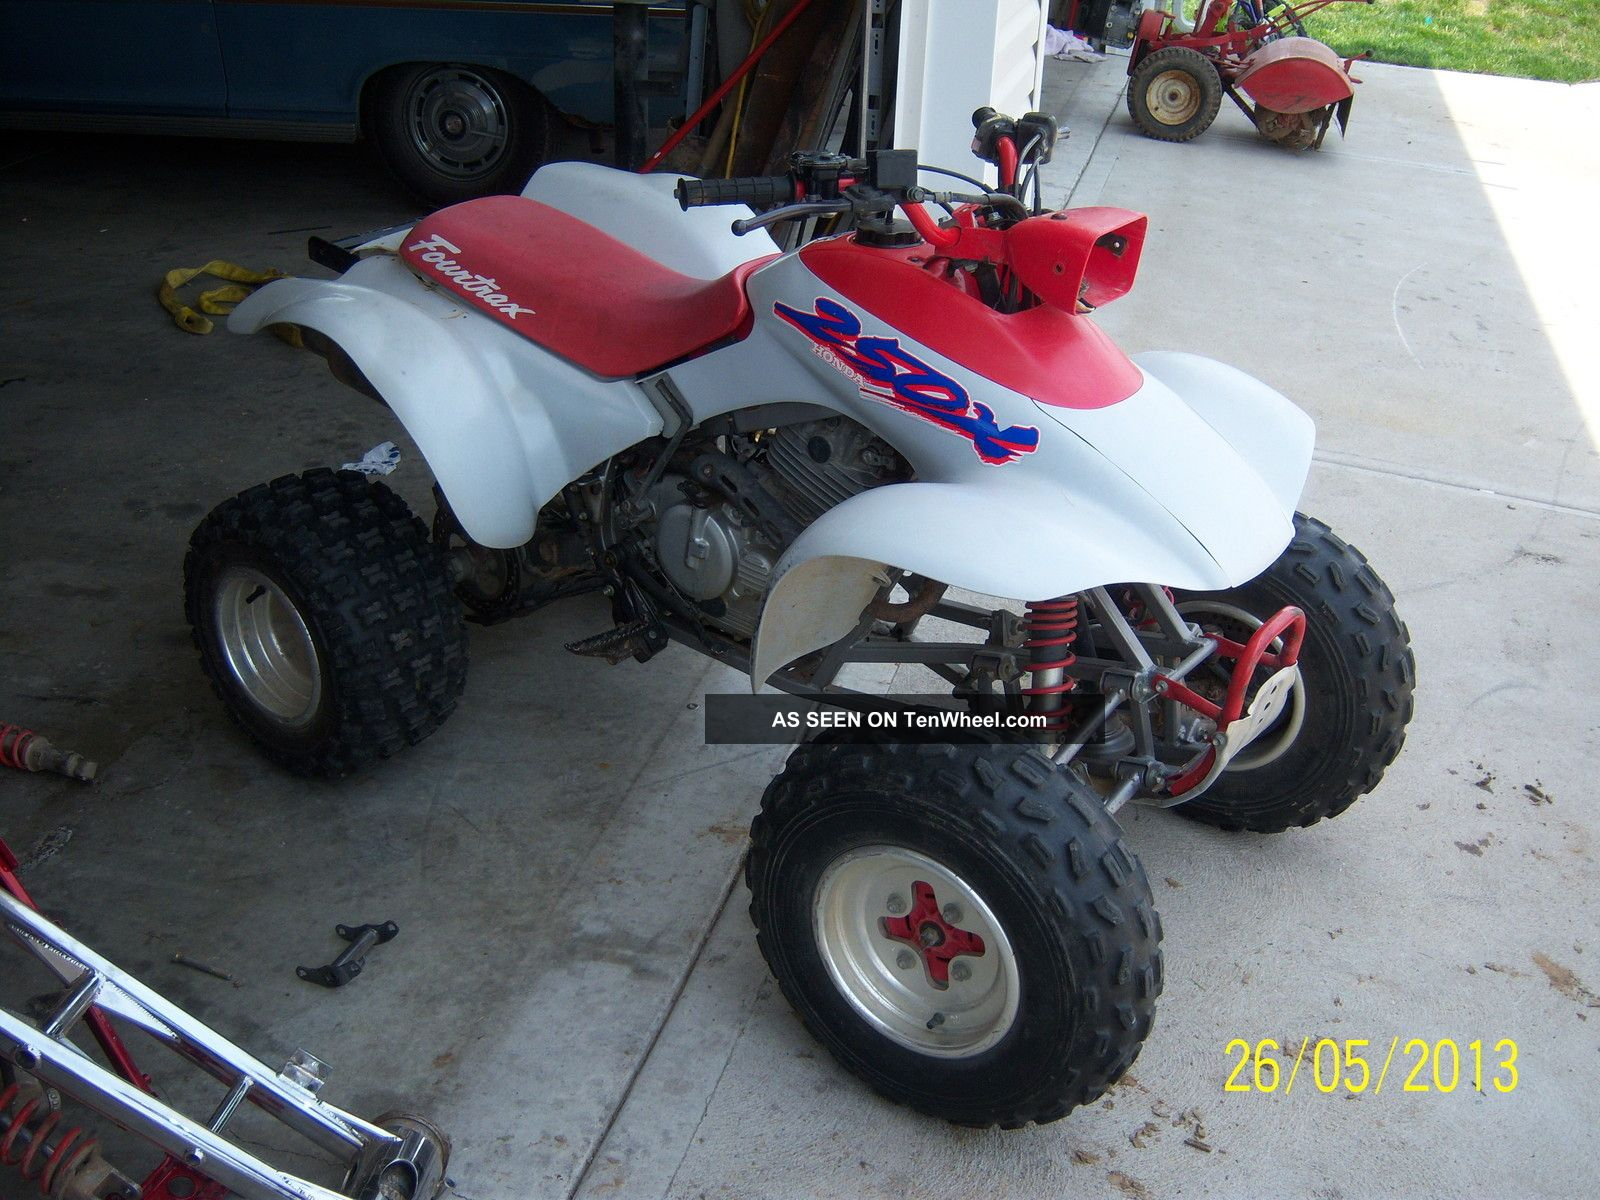 2002 honda recon wiring diagram with 1987 Trx250 Wiring Diagram on Yamaha Bear Tracker 250 Oil Filter together with Honda Cr 125 Manual further 1987 Trx250 Wiring Diagram likewise Walpapers Anime Hot Hd Con Zoom further 40395 Stator Question French Wel e.